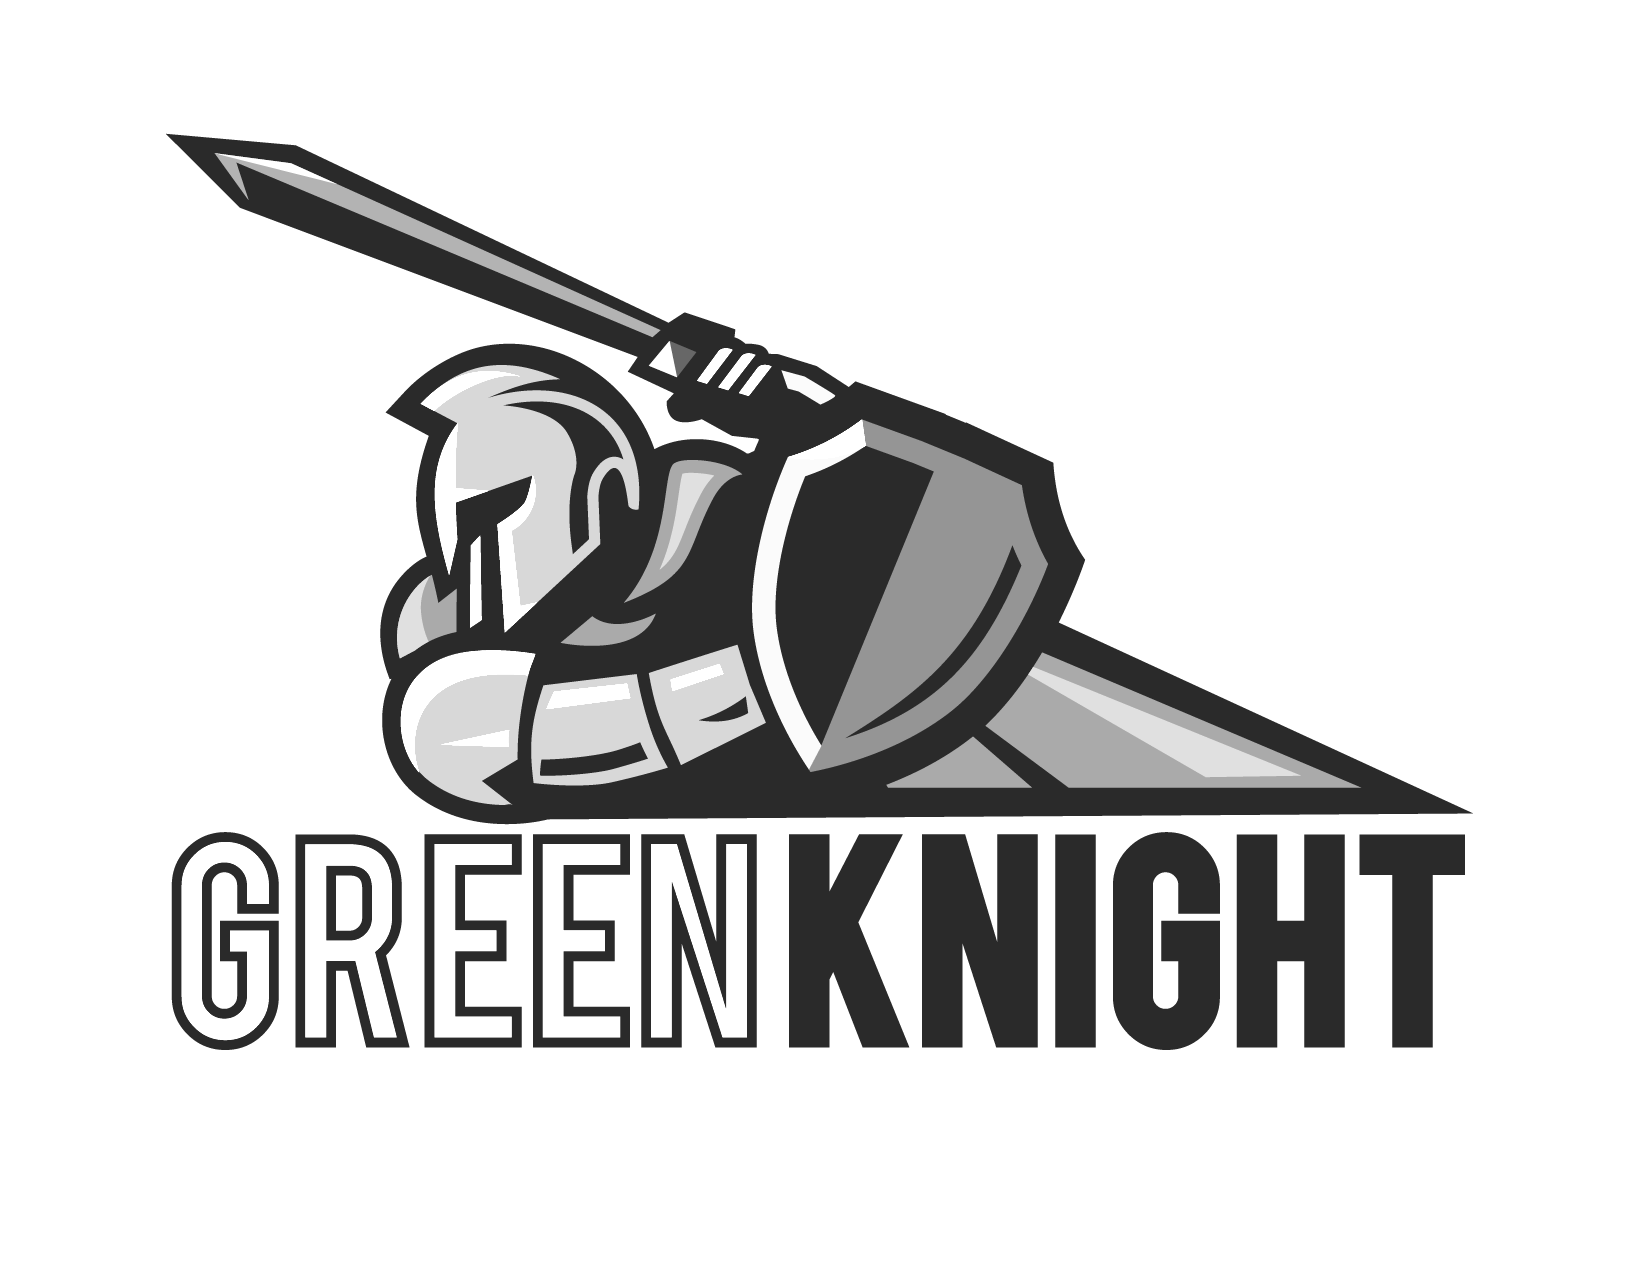 Knight clipart green knight. Our company www greenknight